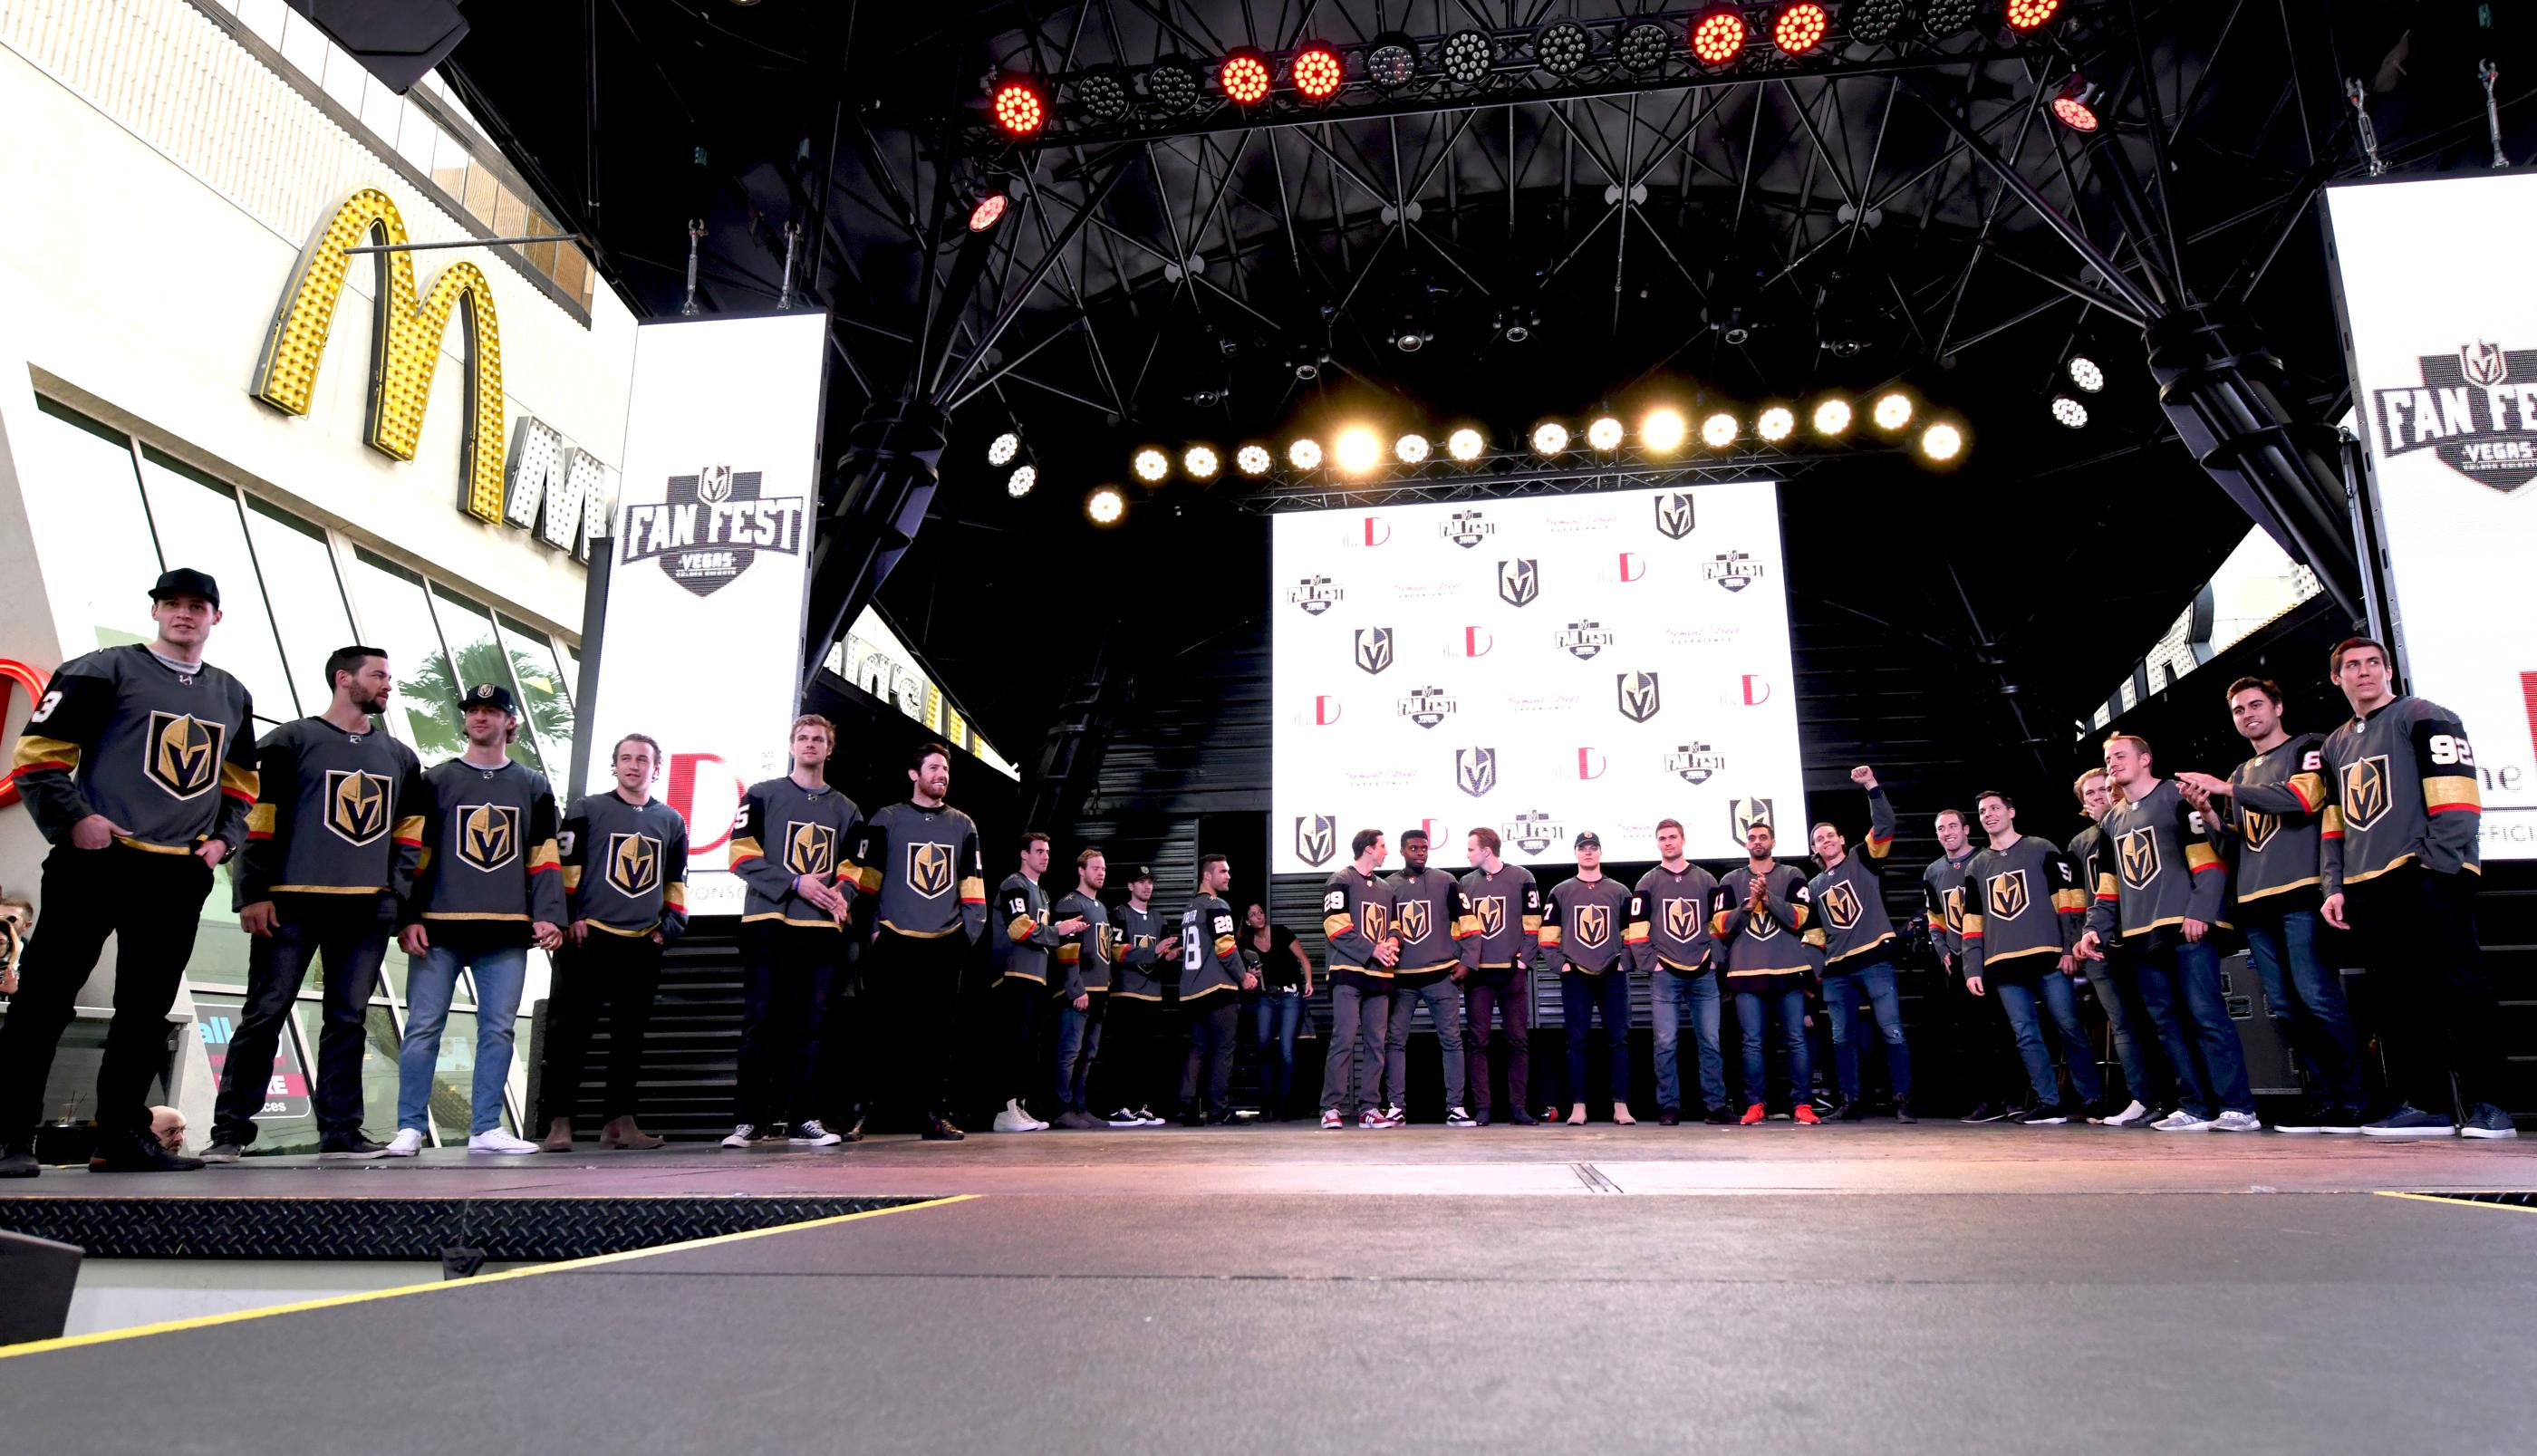 The Golden Knights host a Fan Fest with the D Las Vegas and Fremont Street Experience. Las Vegas Golden Knights professional hockey team takes the stage at Fremont Street Experience. Sunday, January 14, 2017. CREDIT: Glenn Pinkerton/Las Vegas News Bureau